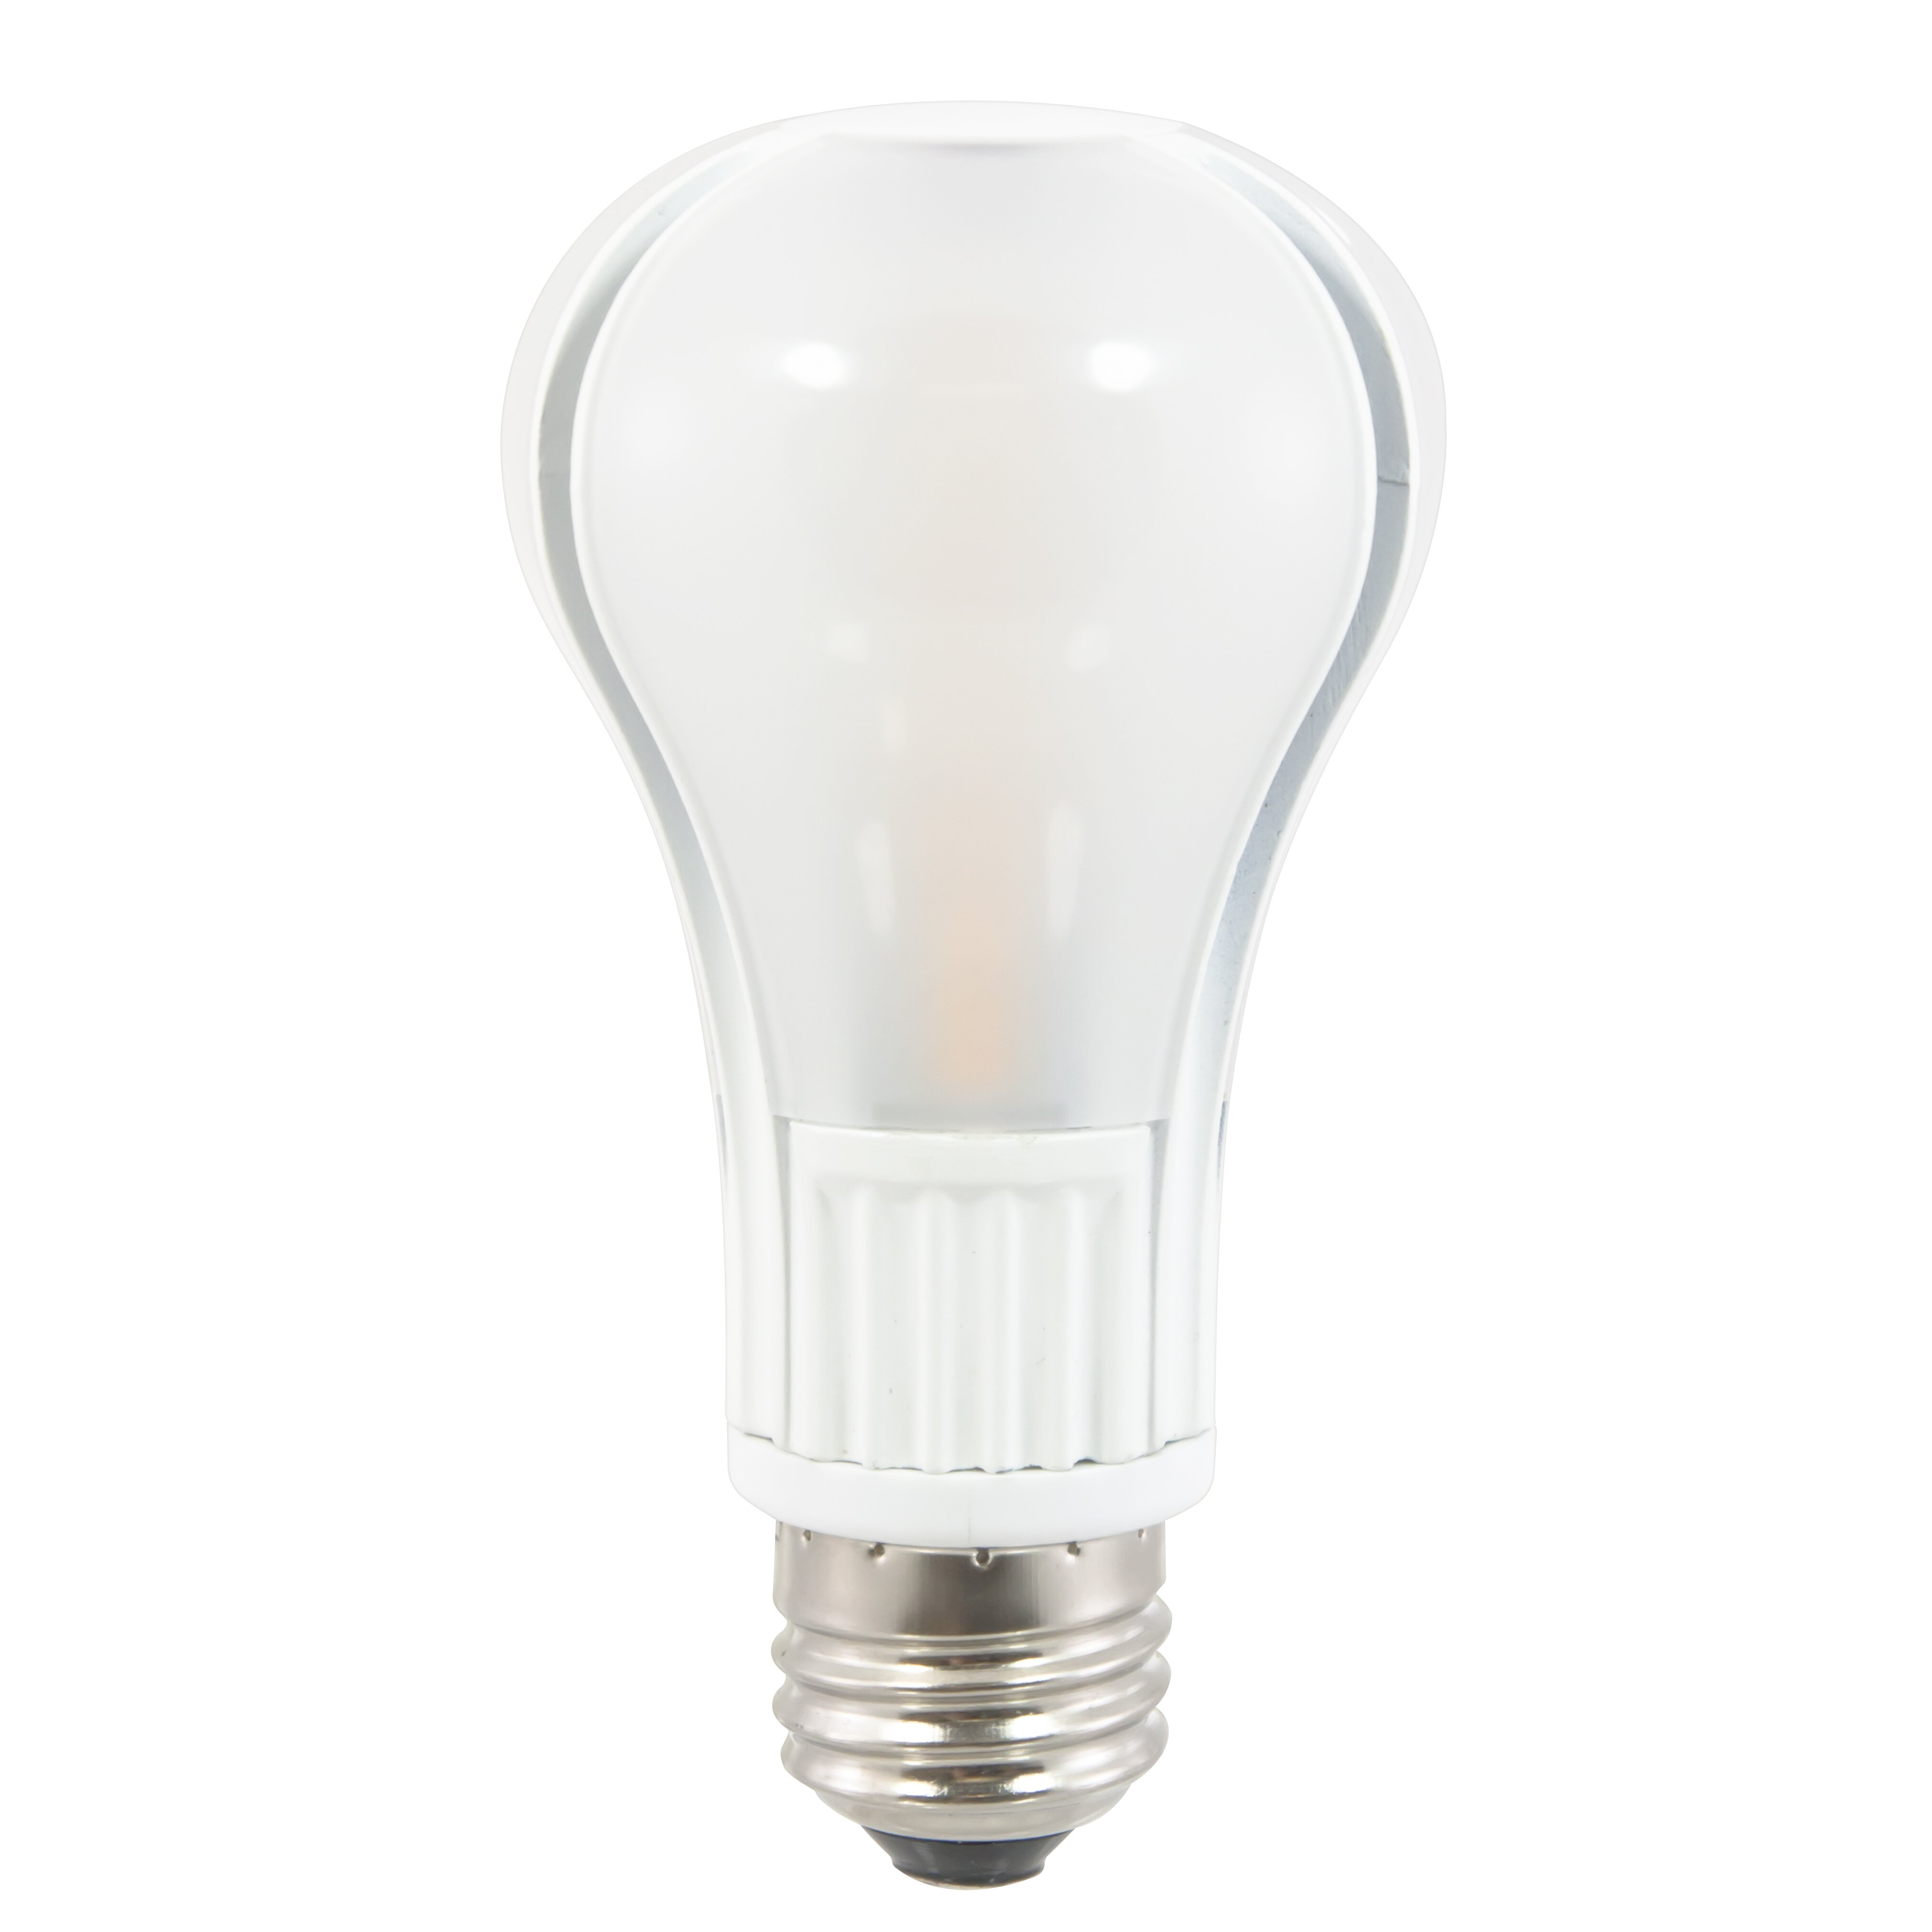 Led Light Bulb Reviews Led Light Design Led Light Bulb Review And Ratings Best Led Light Bulb